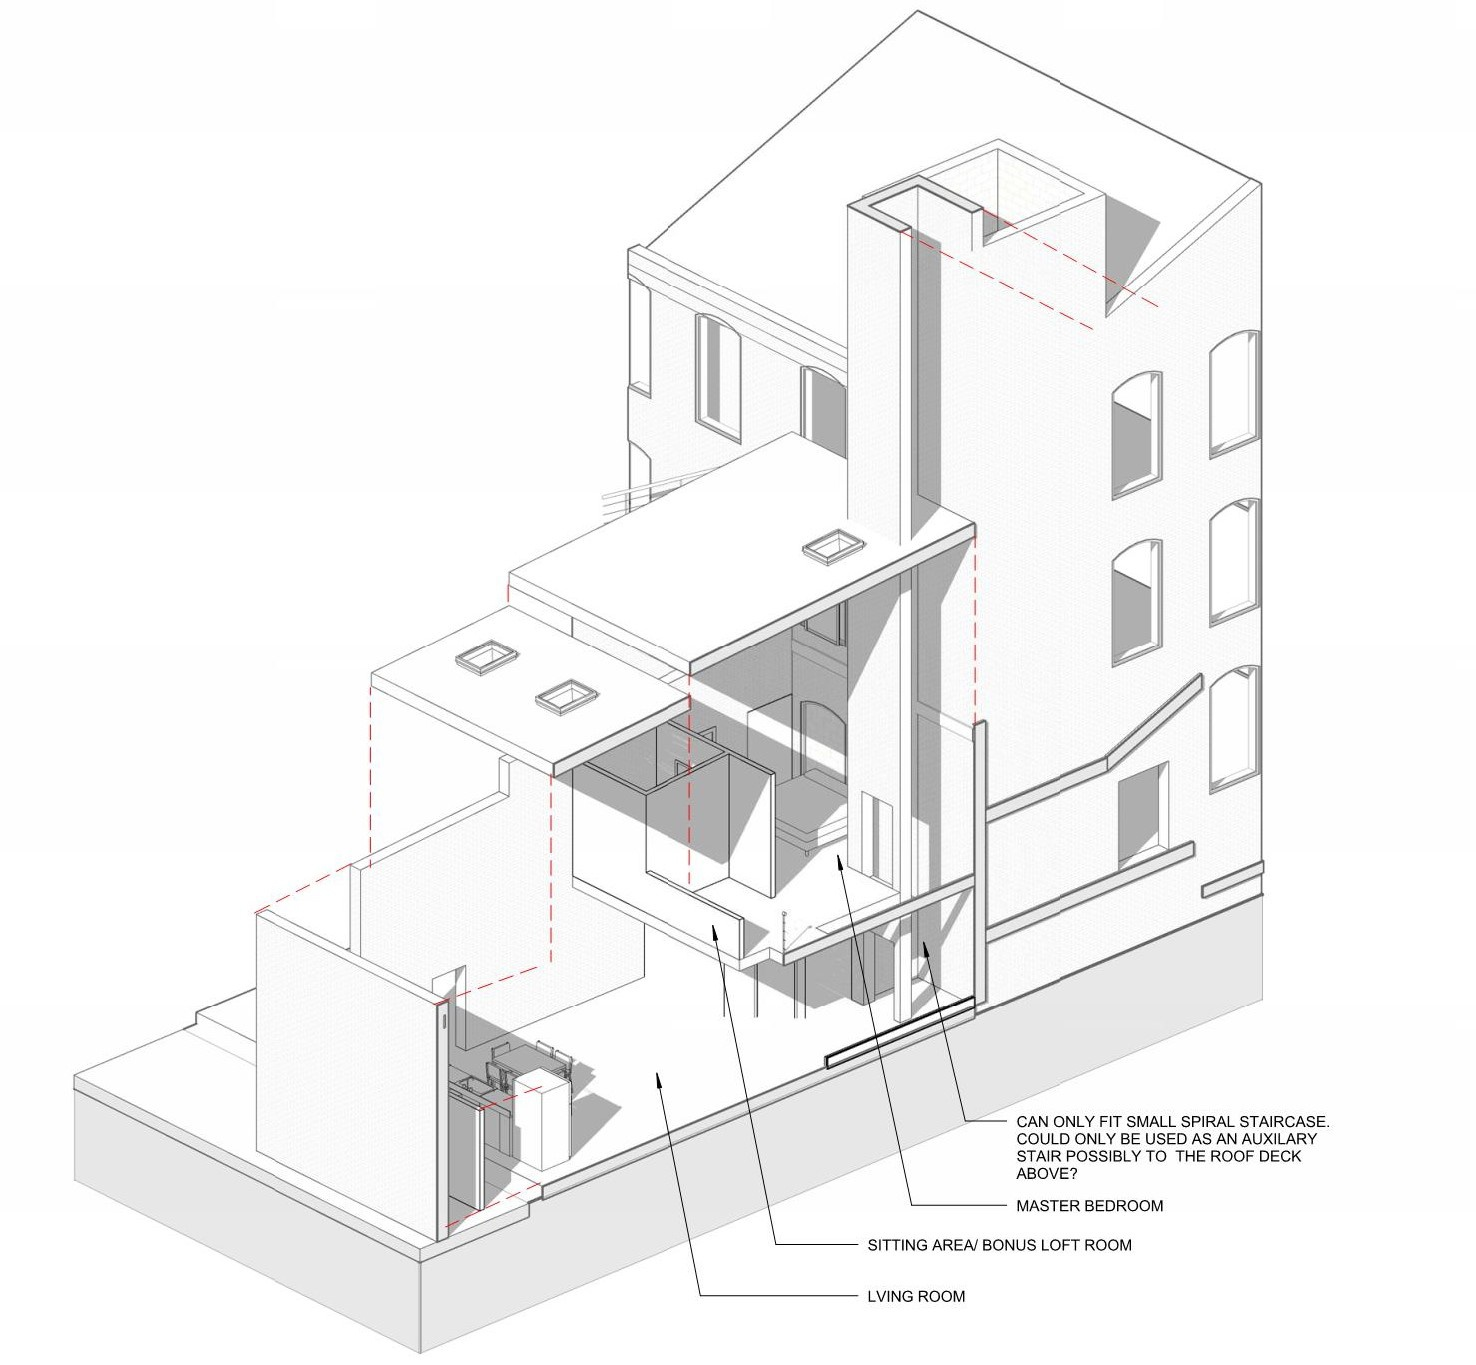 Renovation of existing boiler room to apartment